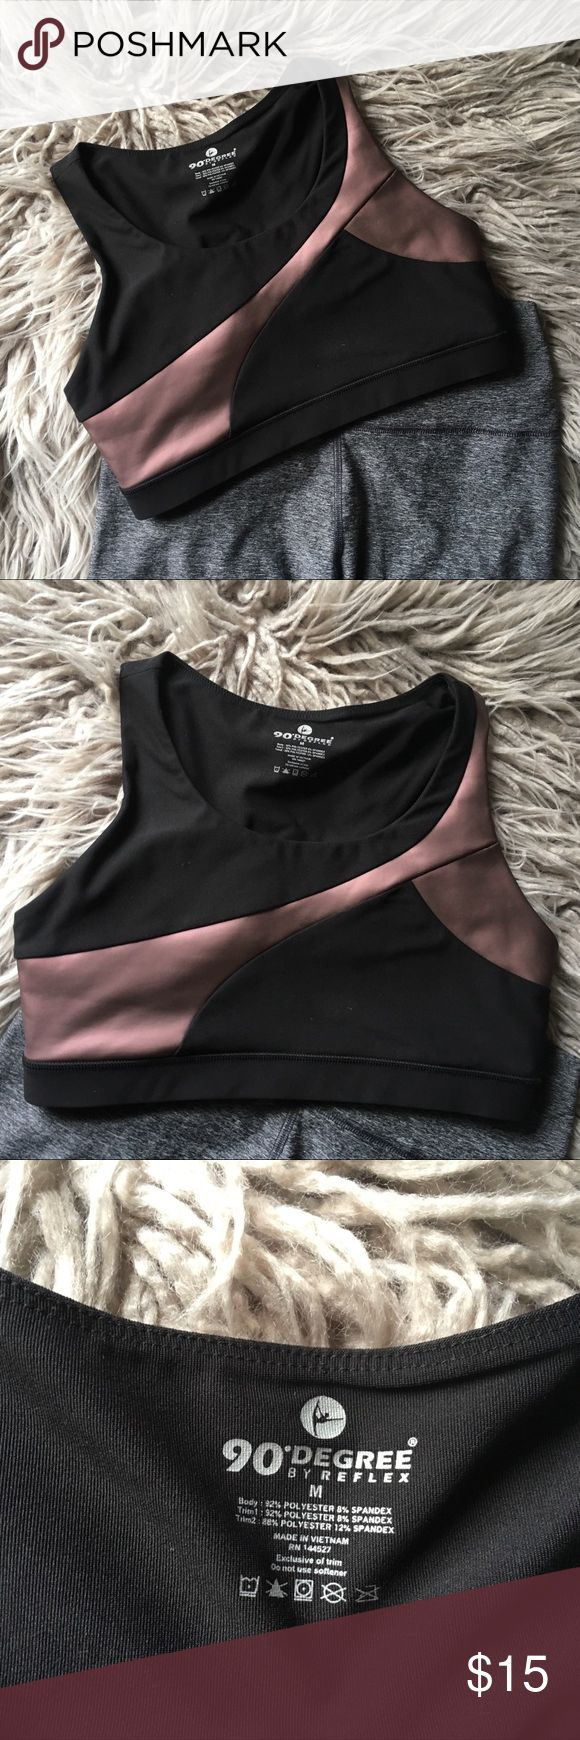 • Metallic Rose Gold Sports Bra Crop Top • You can wear this any which way; crop top or as a traditional sports bra.  Size is a medium but it would better fit a small!  Slight tear in side seam that has been restitched just adds some lovely flair to this awesome top. 90 Degree By Reflex Intimates & Sleepwear Bras